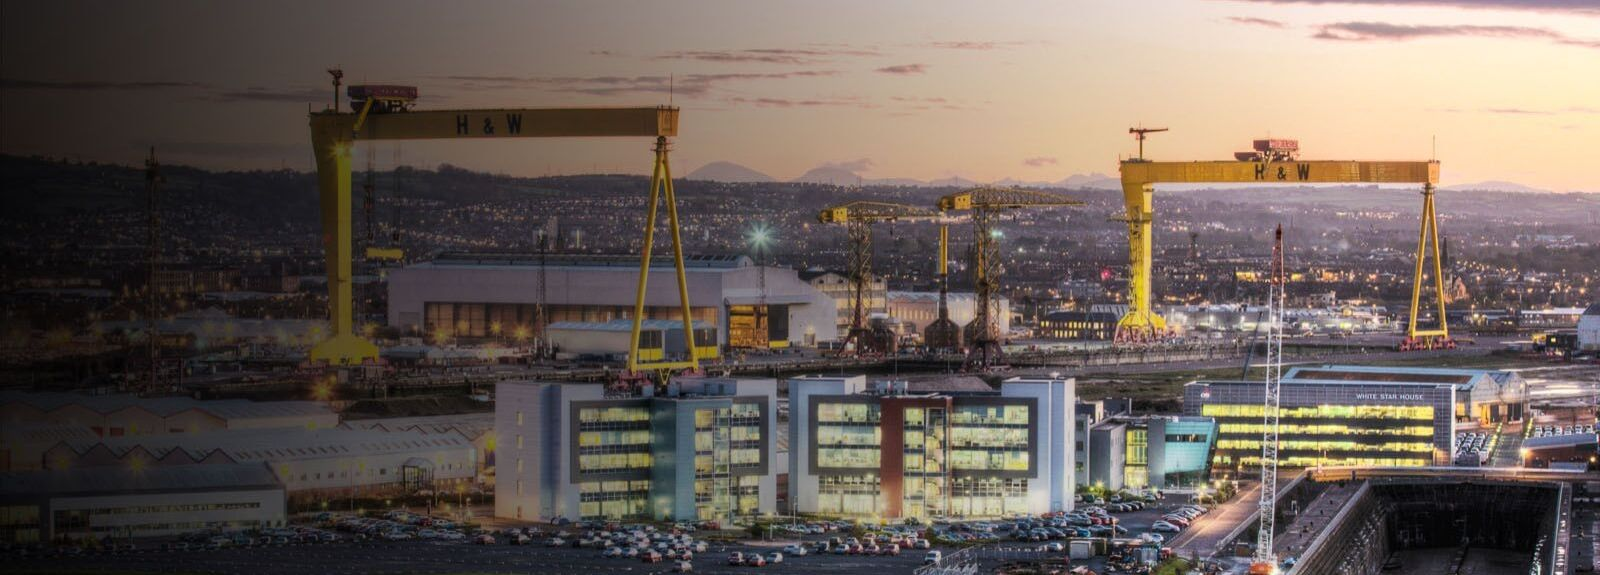 Harland and Wolff cranes